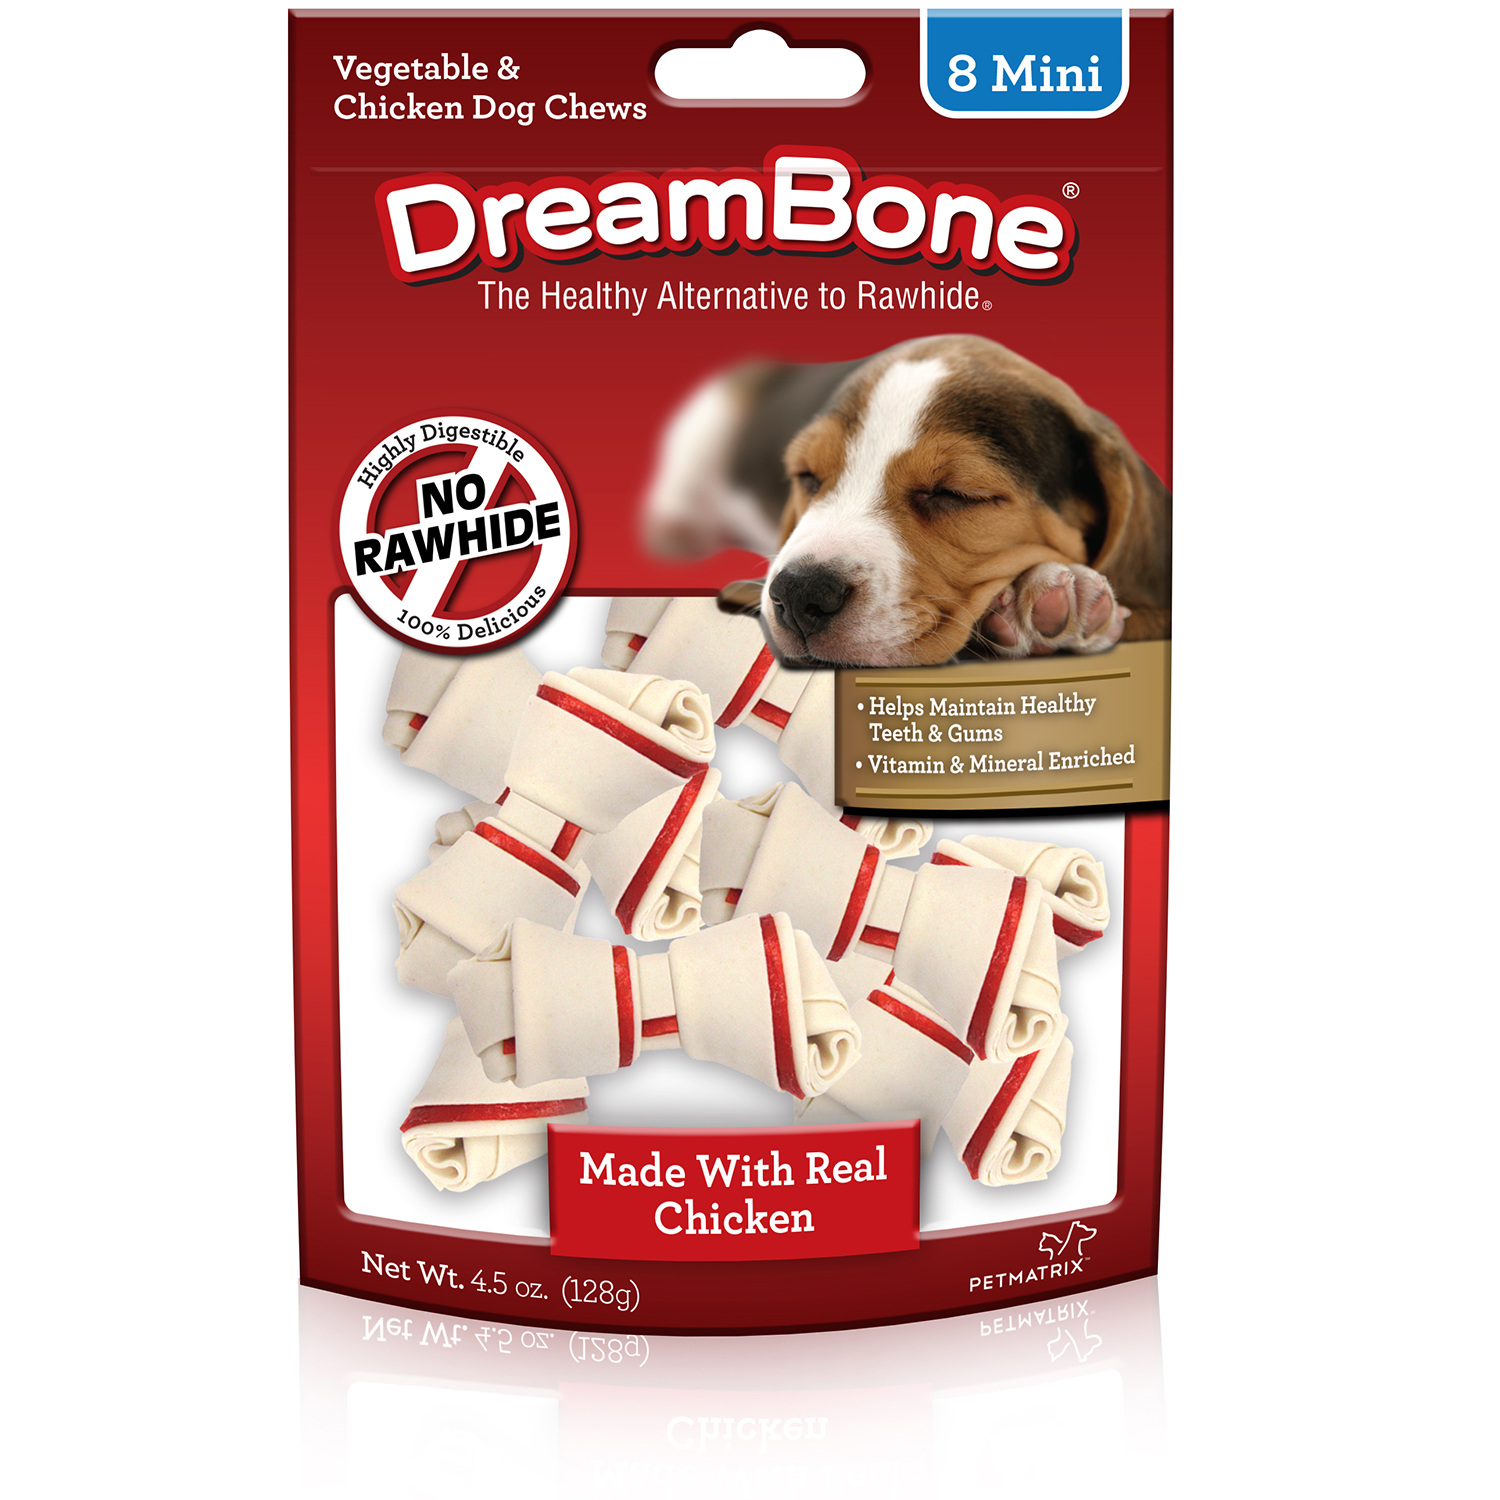 DREAMBONE Veggie and Chicken Mini Bones, 8 count